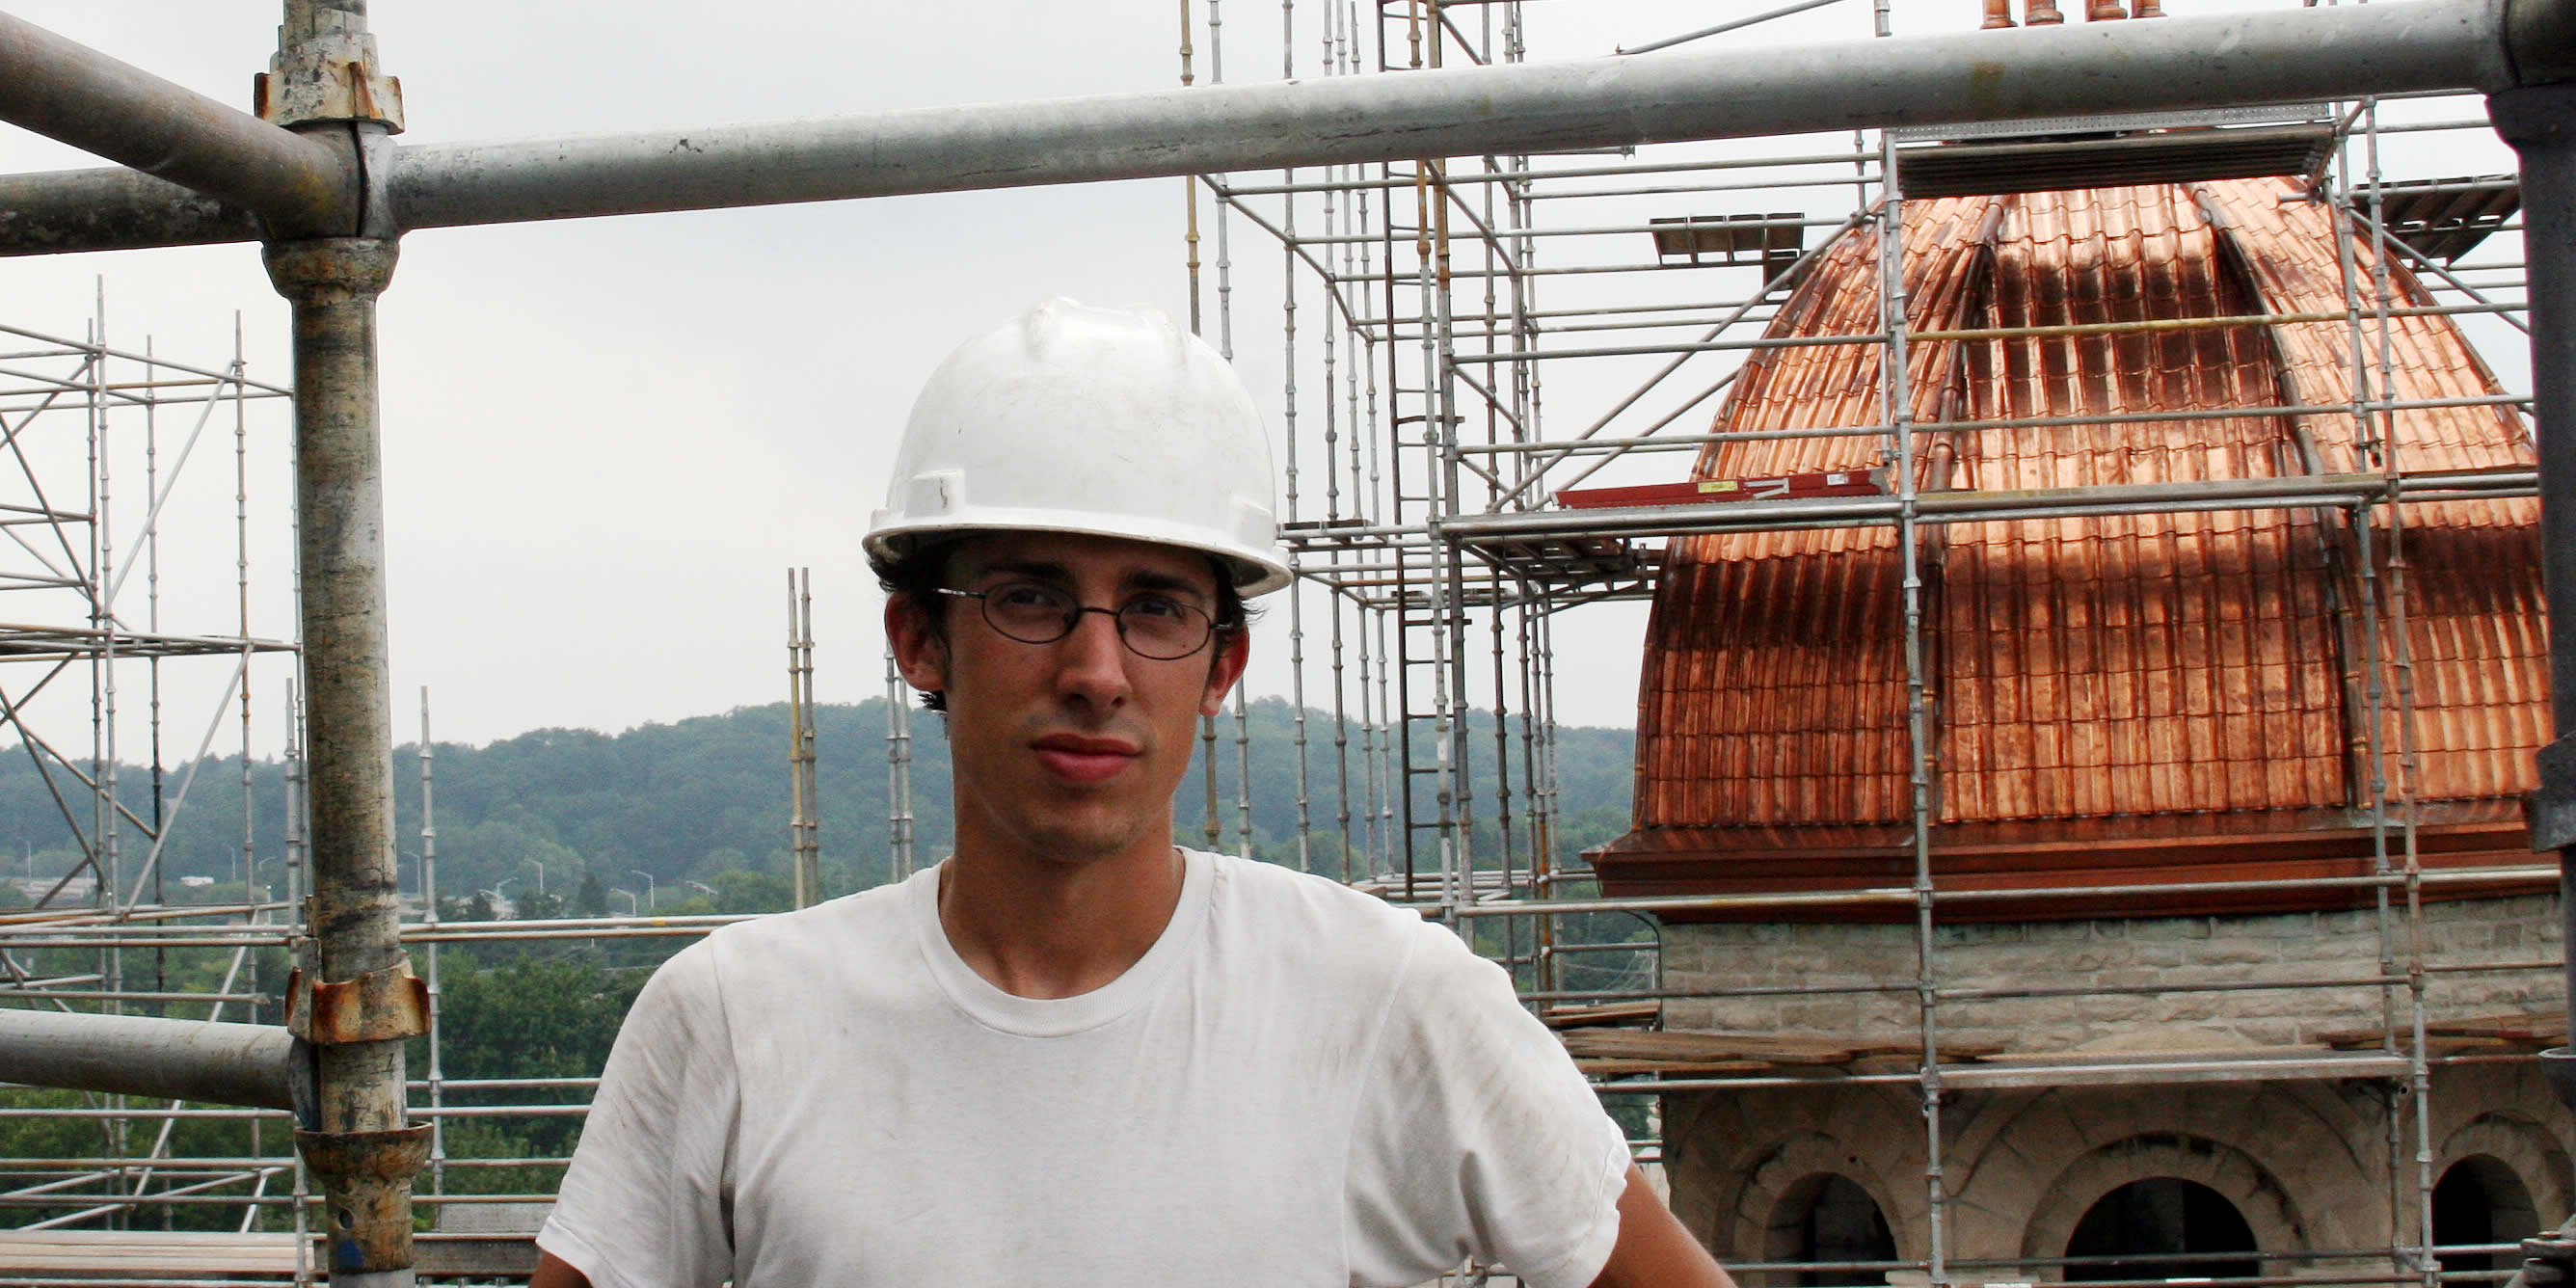 Michael Rodriguez works to restore historical buildings in and around GR.